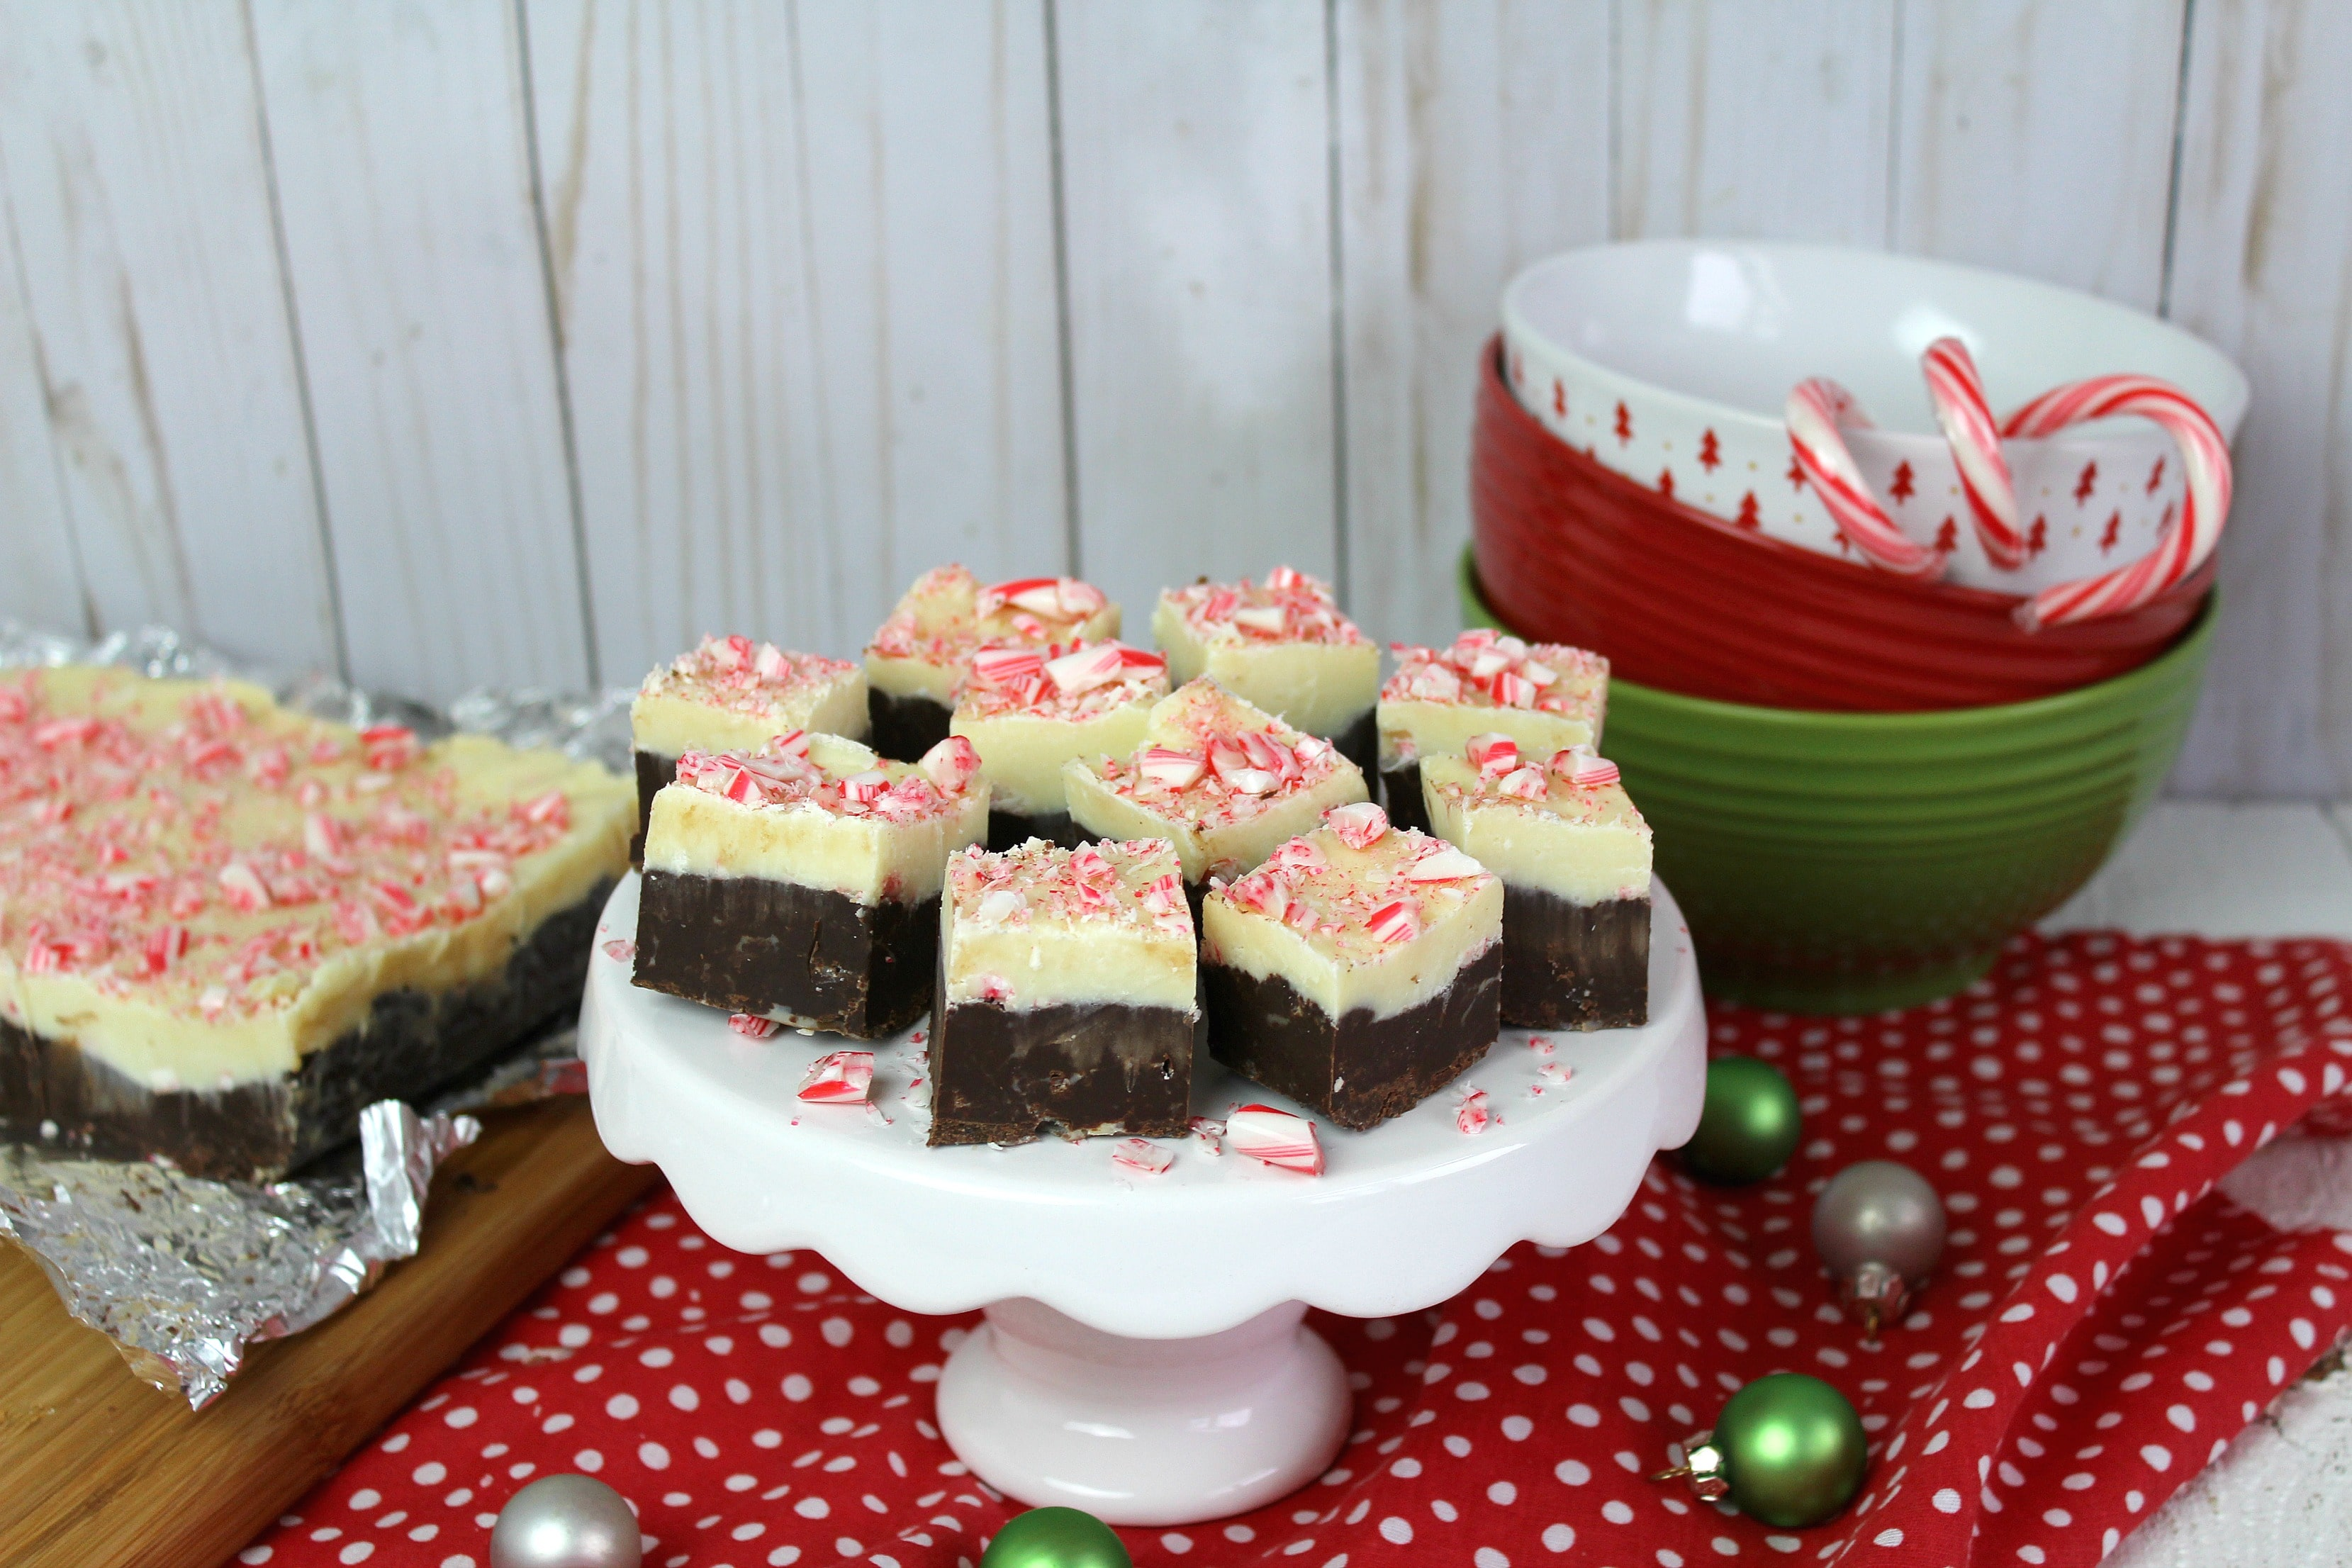 Easy Peppermint Bark Fudge⎢Simple Holiday Dessert Recipe⎢Chocolate and Peppermint Dessert ⎢Food Made Simple